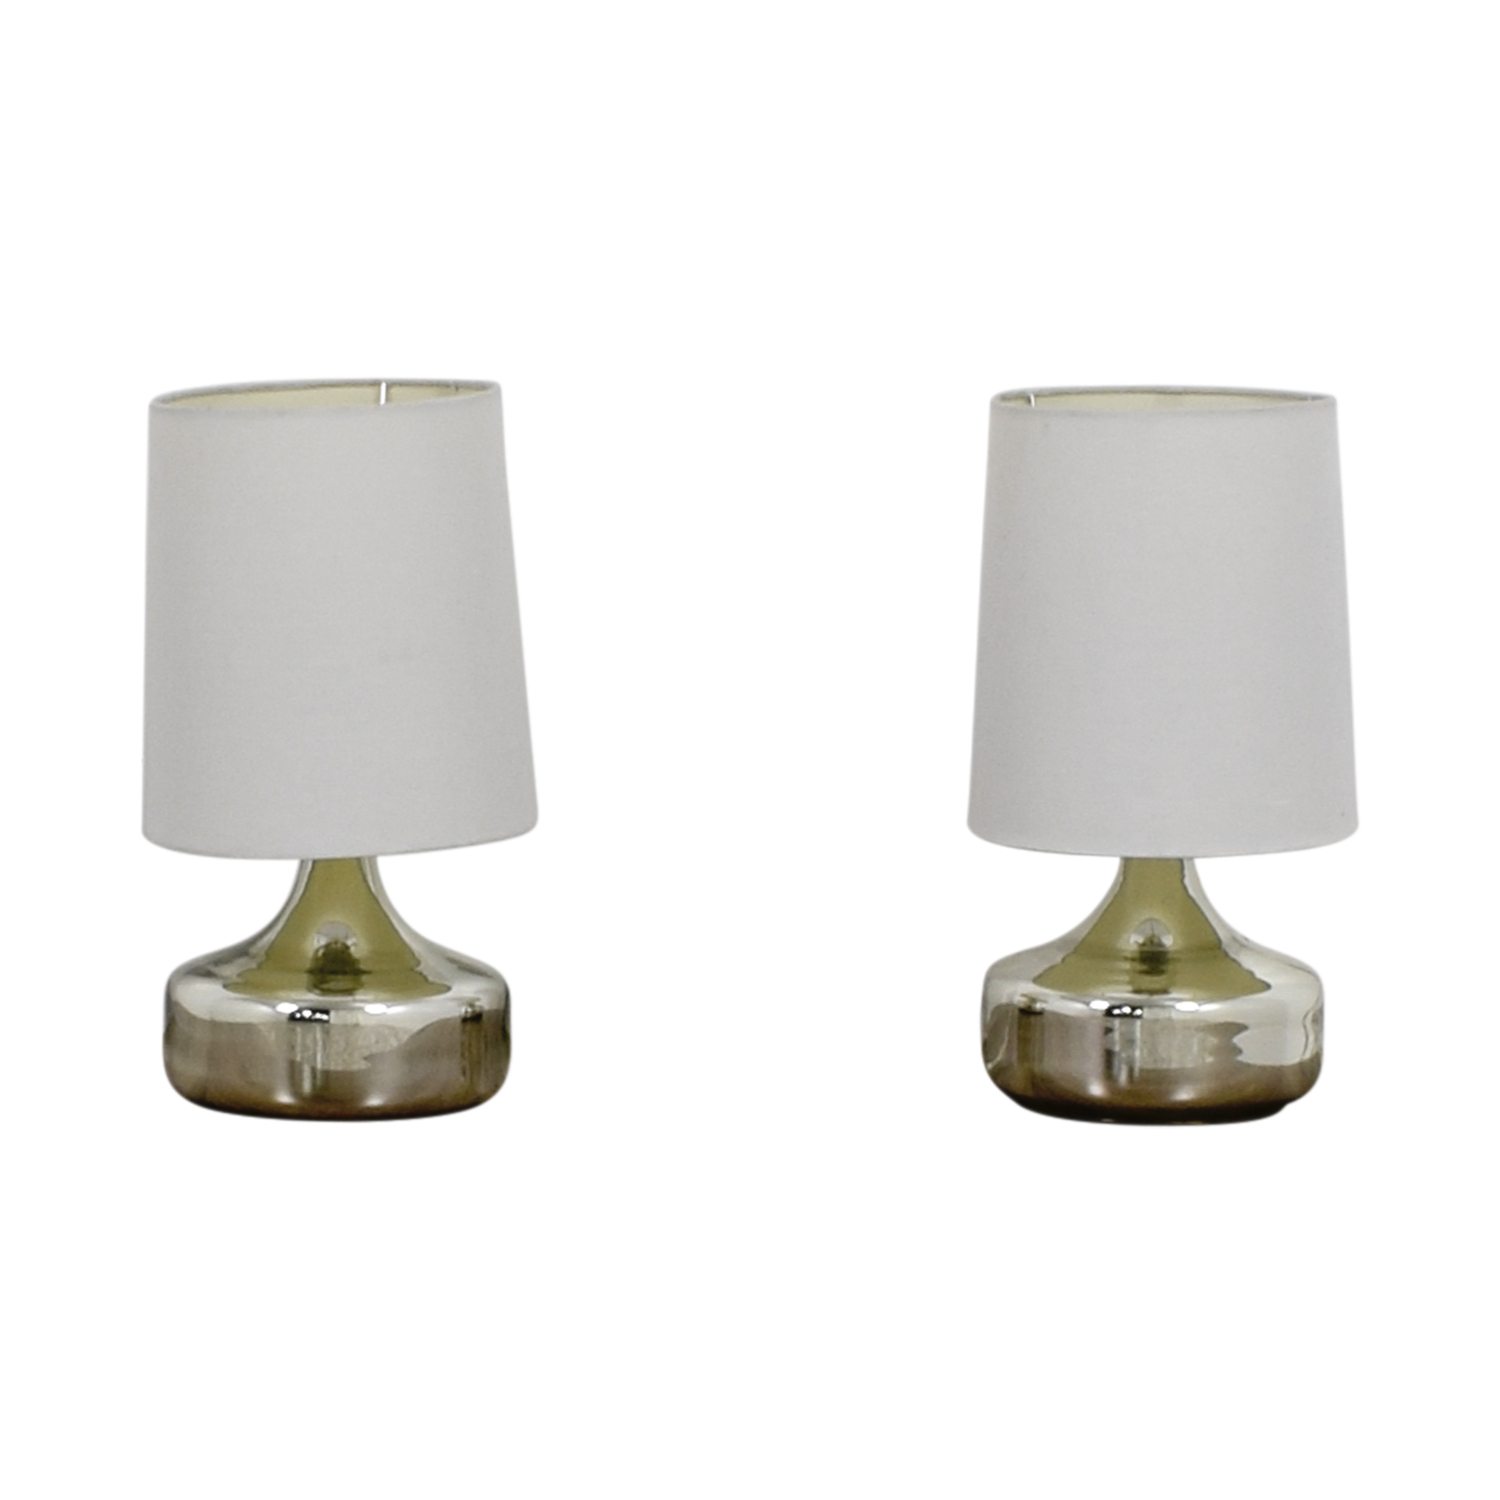 Crate and Barrel Crate & Barrel Silver Lamps price